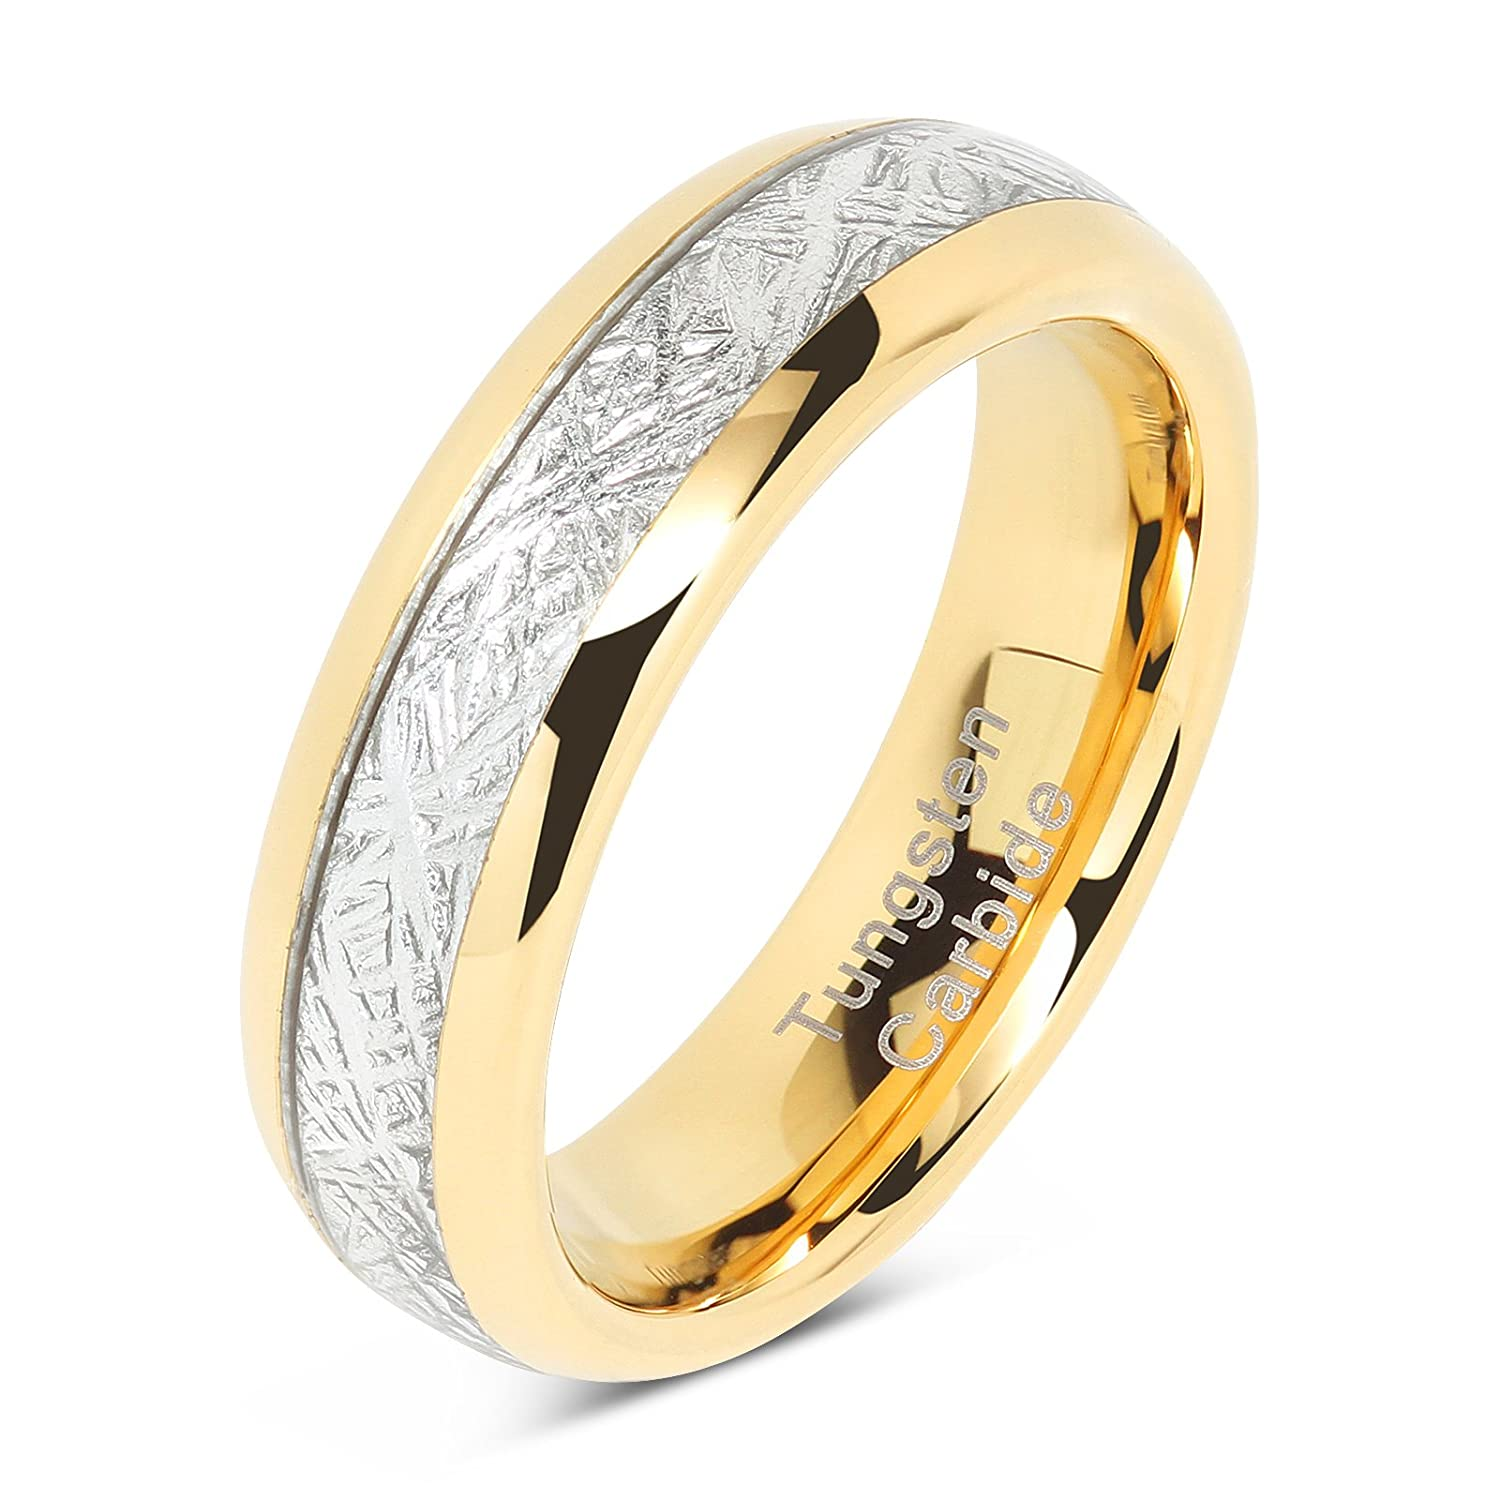 100S JEWELRY 6mm Mens & Womens Tungsten Carbide Ring Meteorite Inlay Wedding Band Size 4-13